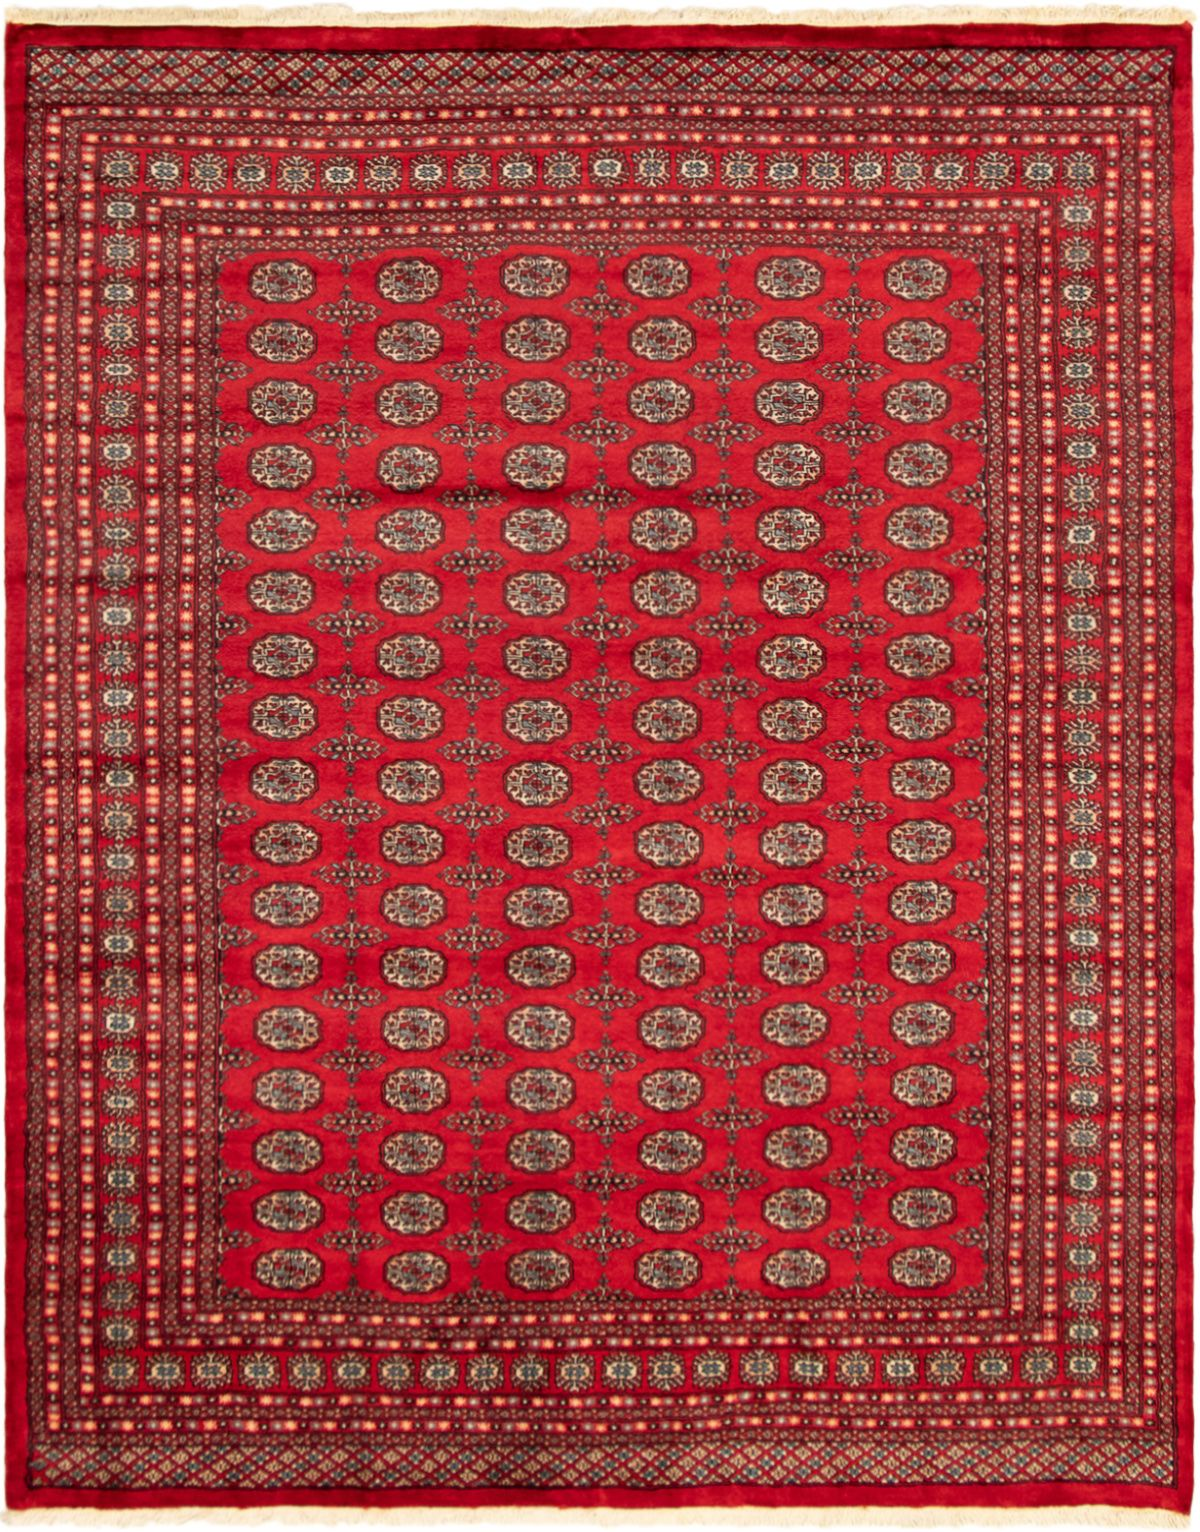 """Hand-knotted Finest Peshawar Bokhara Red Wool Rug 8'2"""" x 10'2"""" Size: 8'2"""" x 10'2"""""""